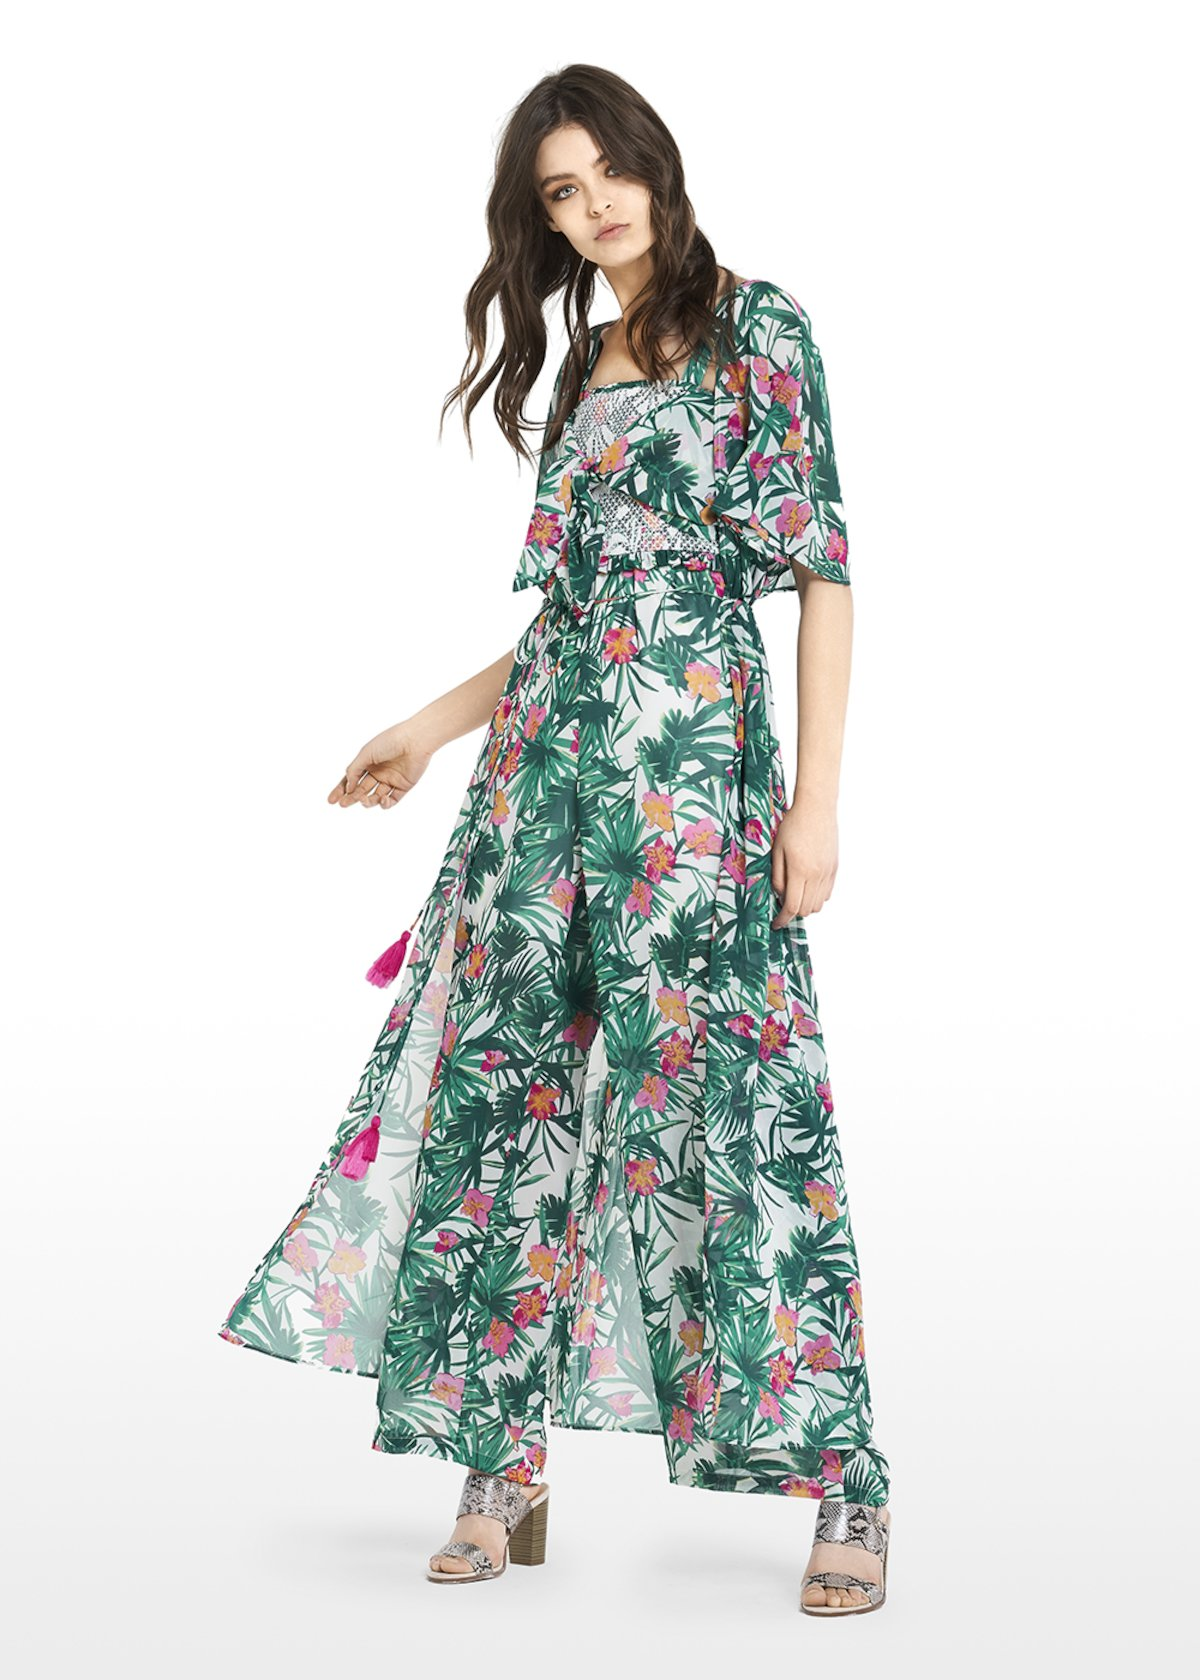 Carl shirt dress with tropical leaves and flowers print